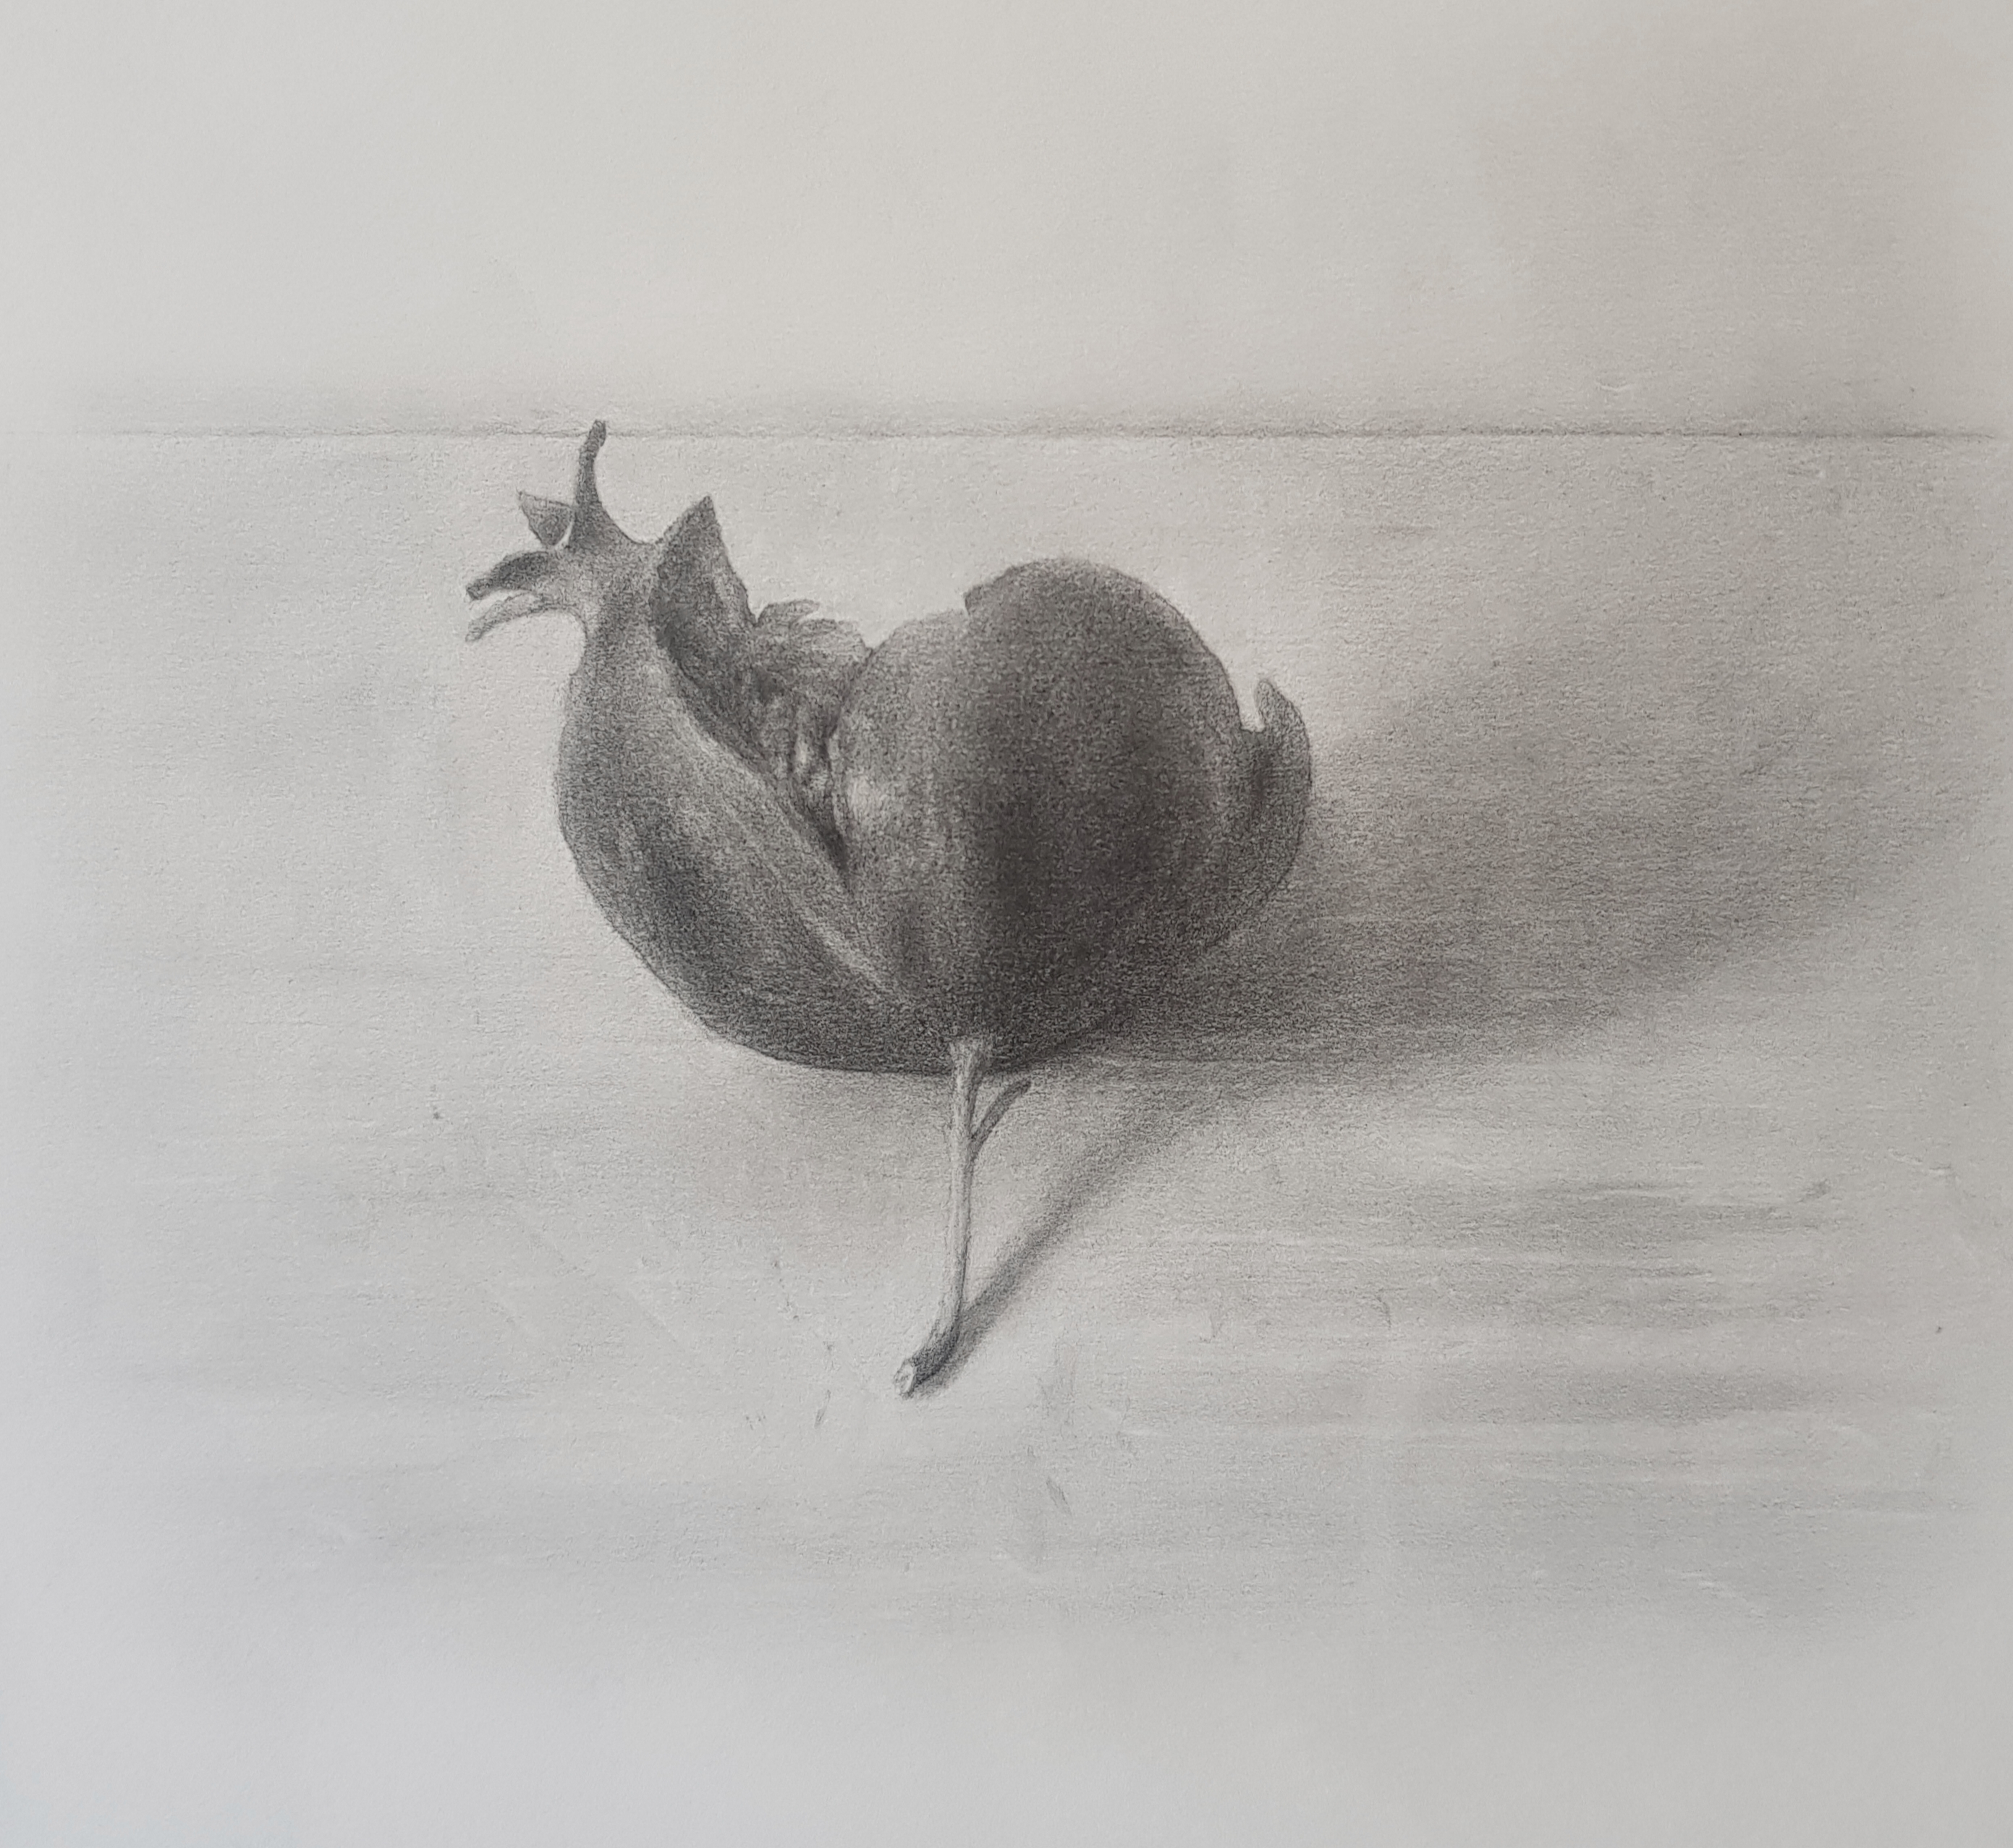 Pomegranate, pencil on paper, 2020